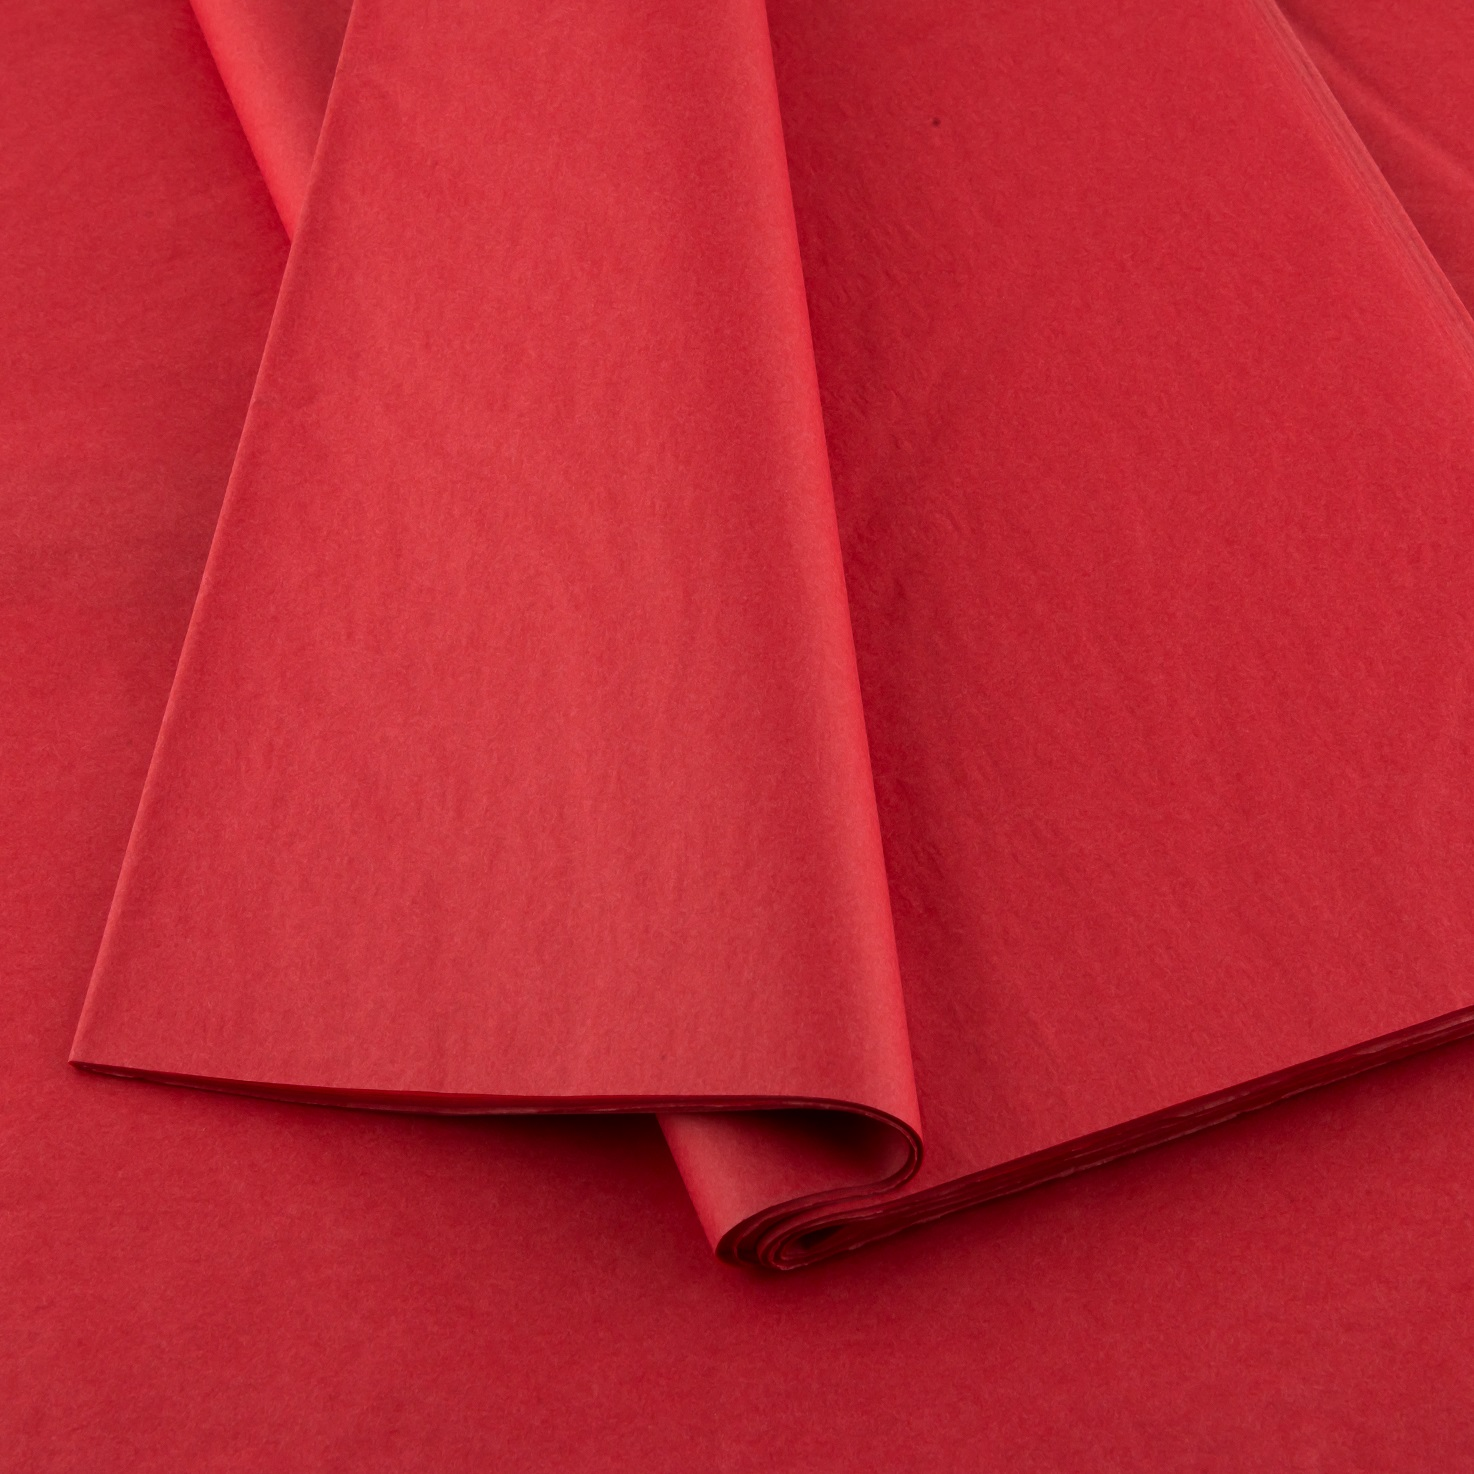 Plain tissue paper red